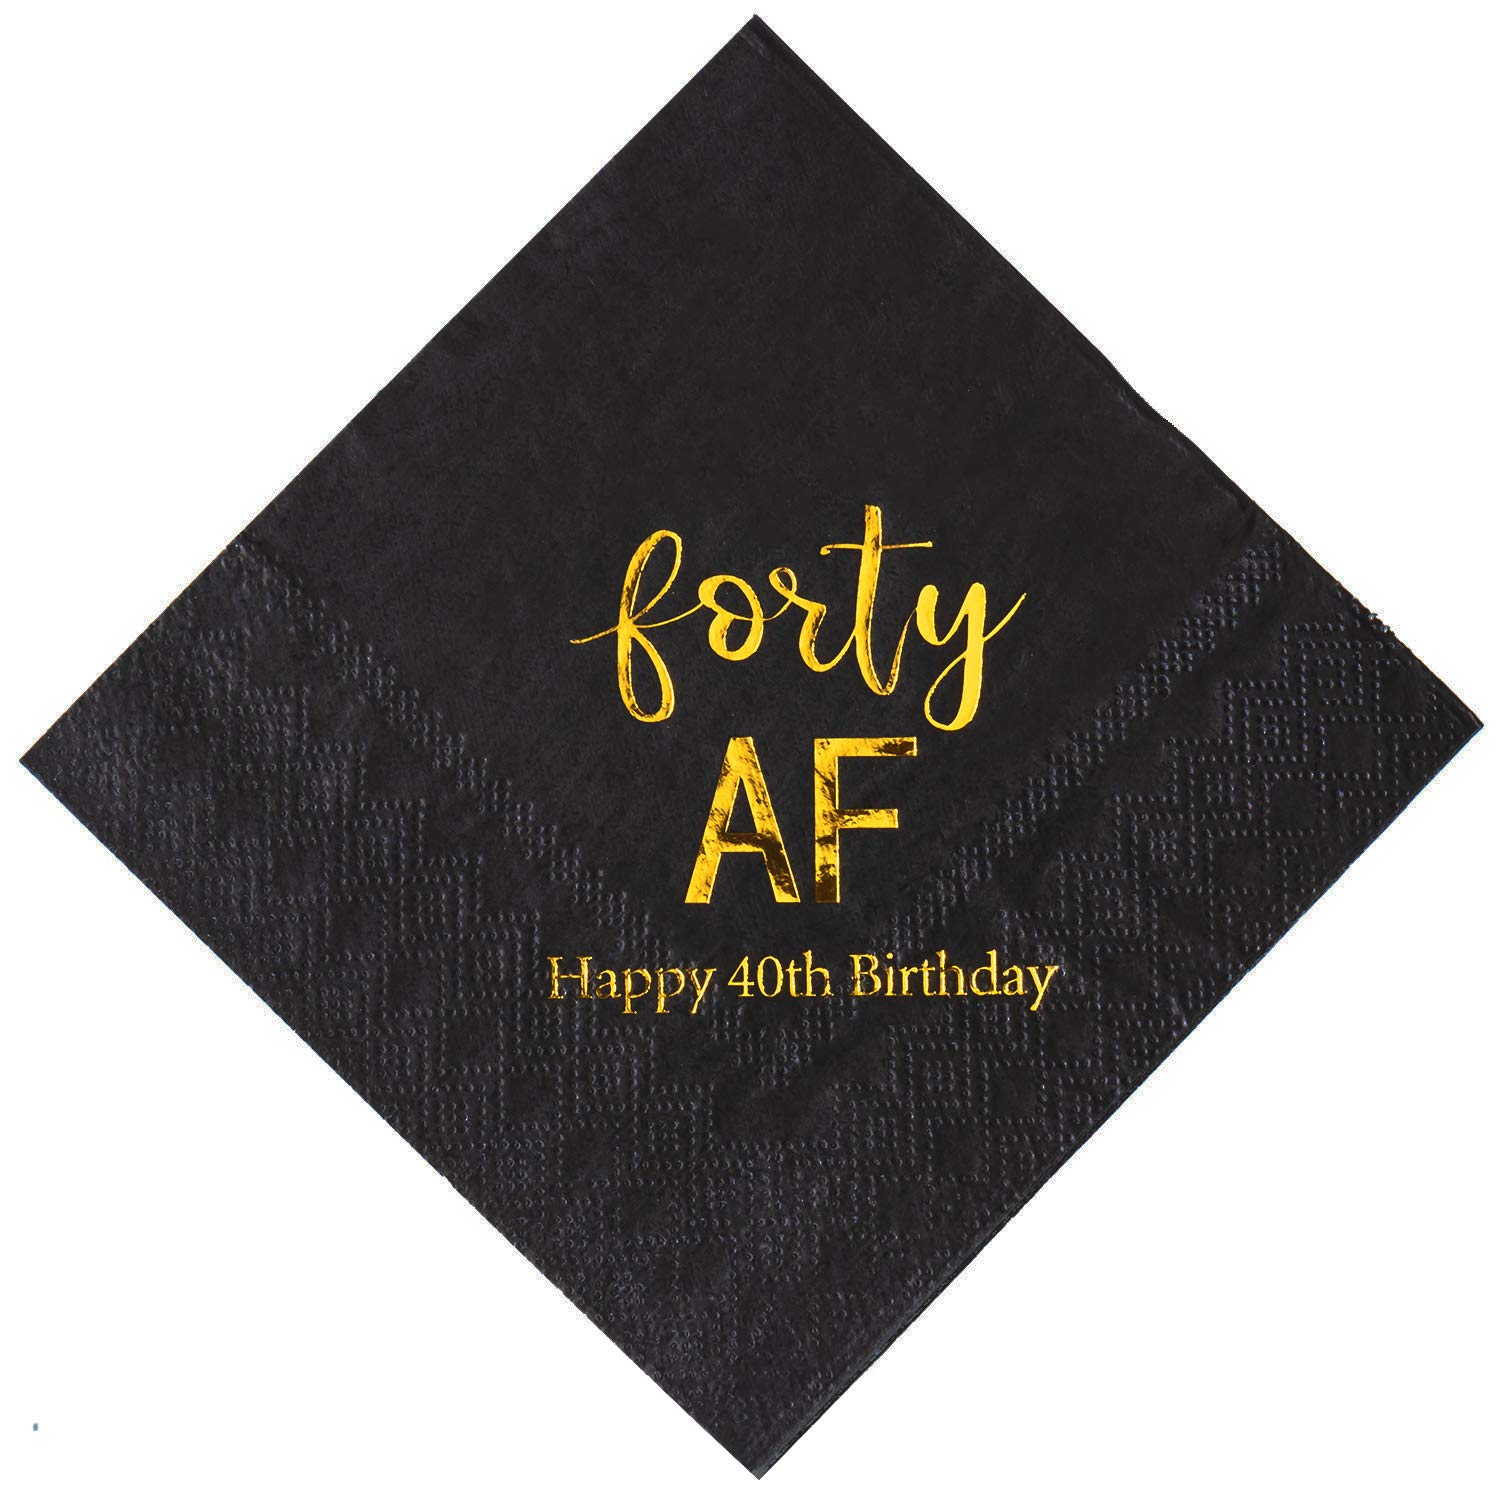 Crisky 40th Birthday Napkins Black Gold Forty AF 40th Birthday Cocktail Napkins Beverage Napkins 40th Birthday Party Candy Table Decoration, 100 Count, 3-Ply by crisky